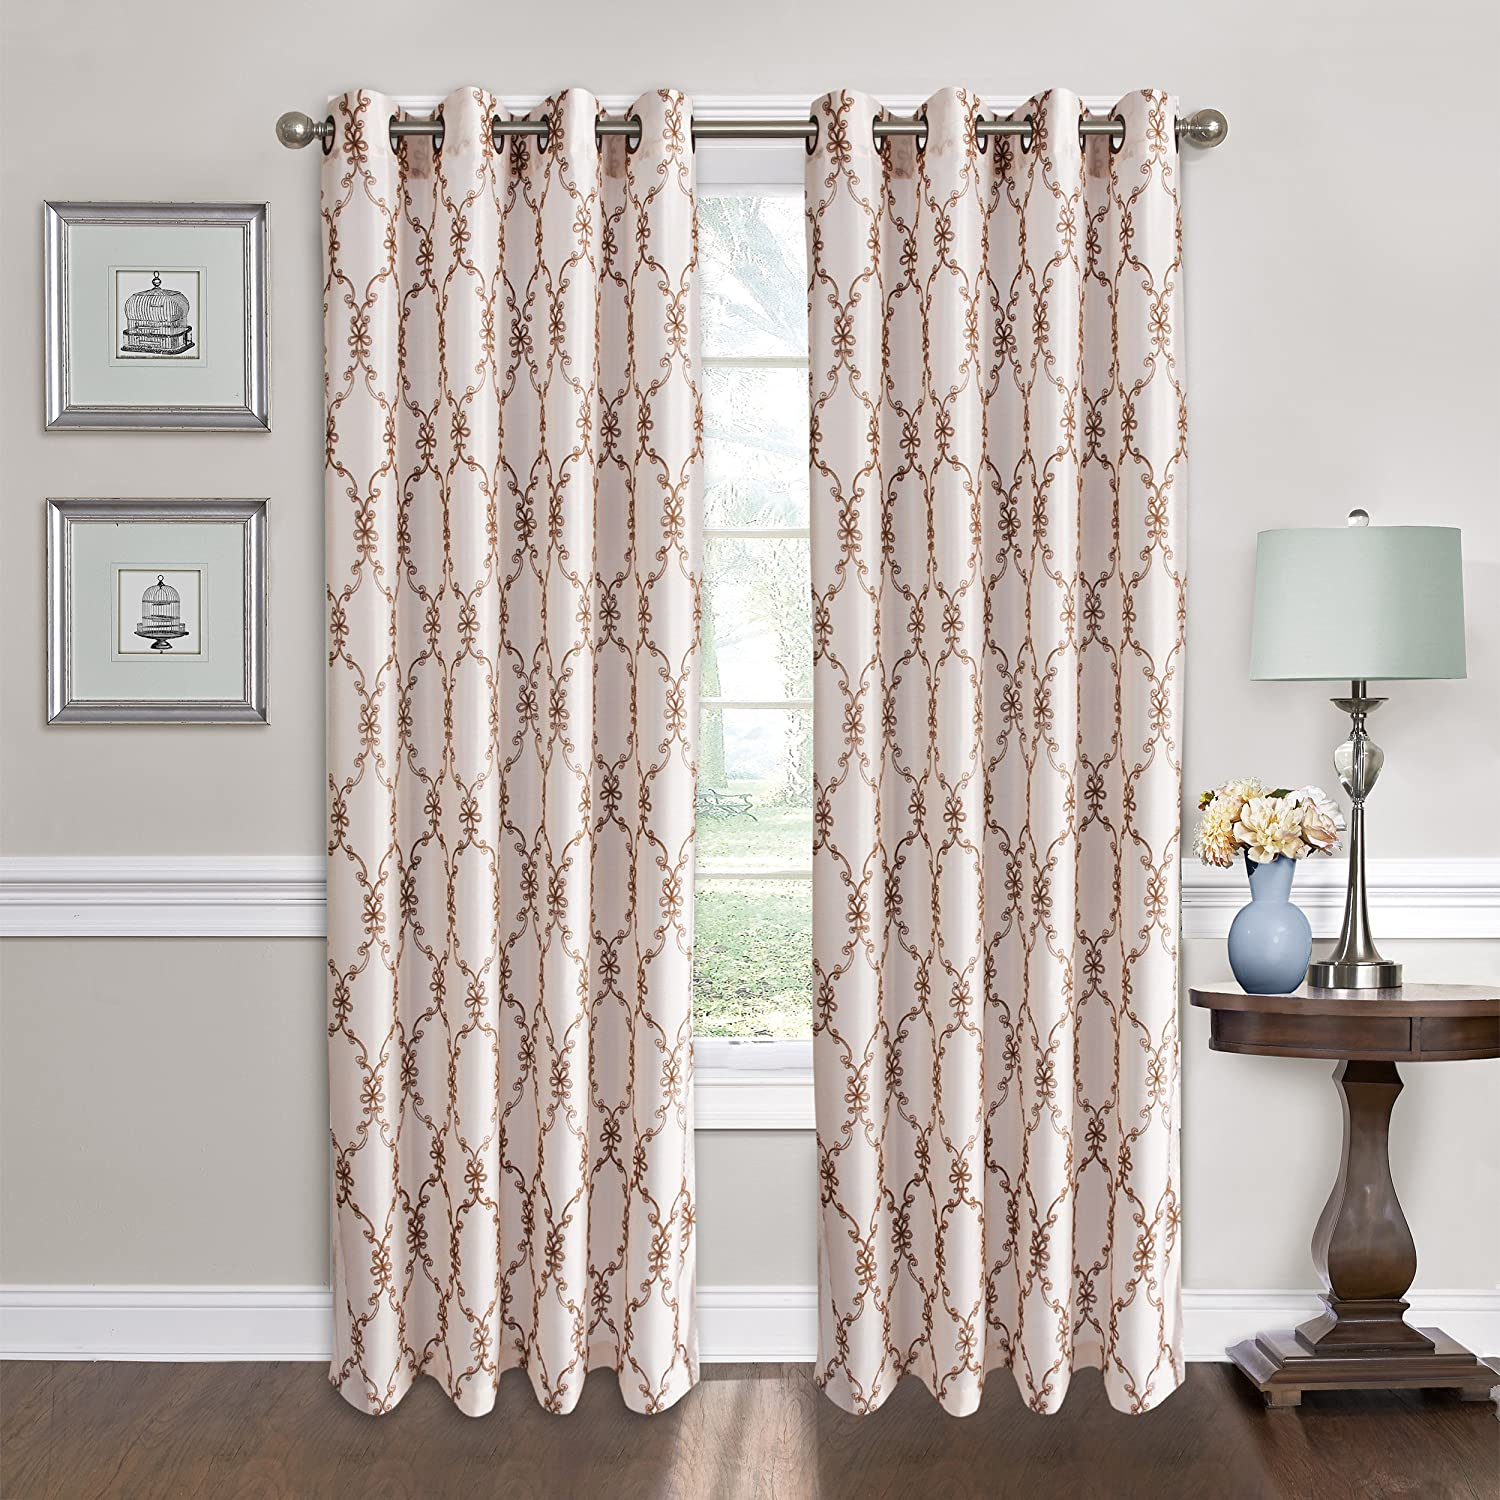 All American Collection New 1 Panel Oval Geometric Floral Design Faux Silk Embroidered Curtain With Grommets Beige